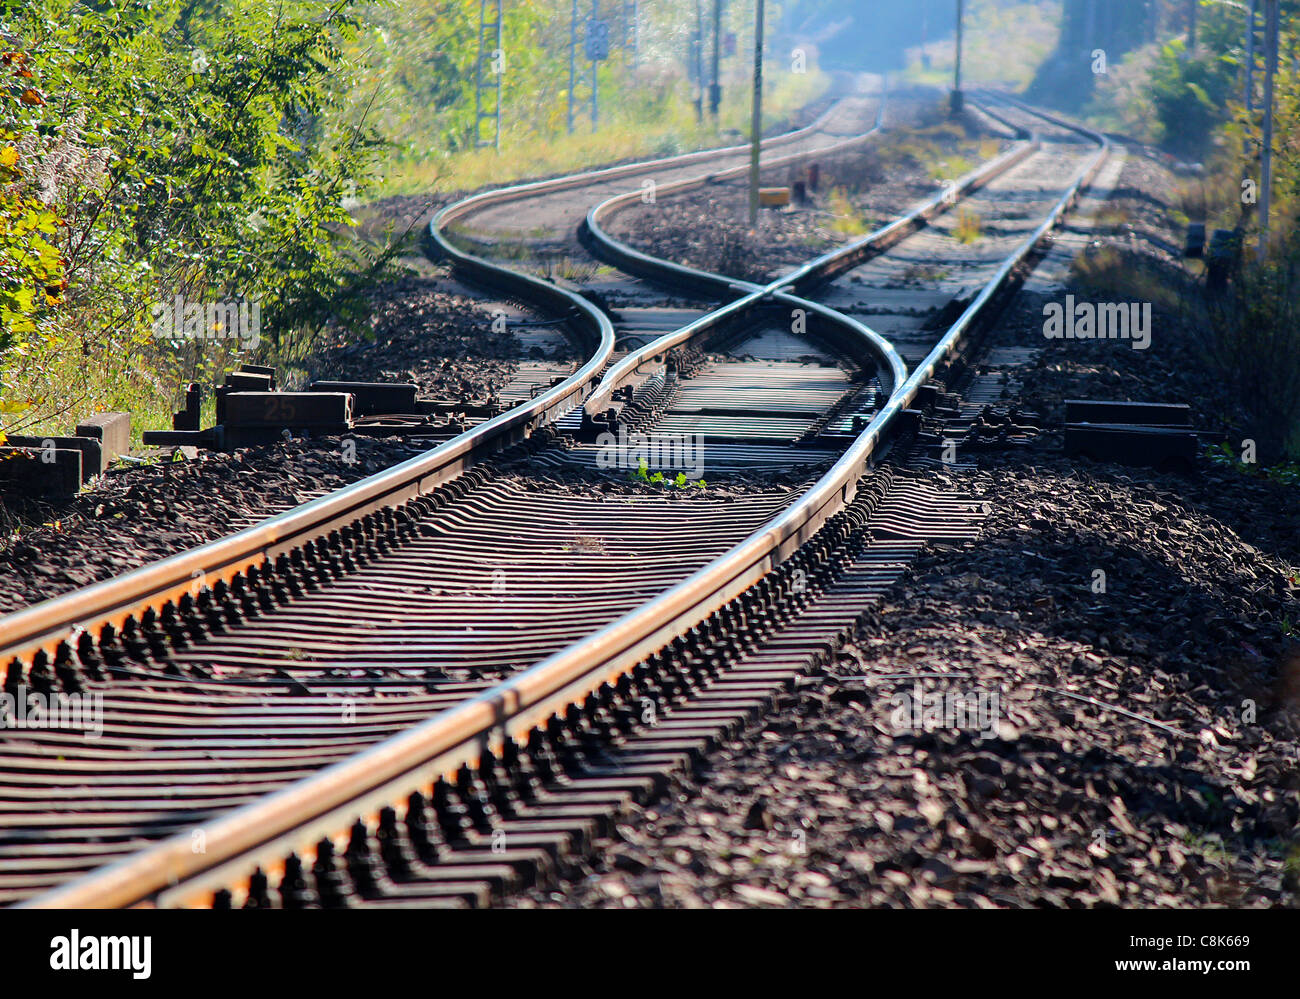 A railwai track switch as a symbol of decicion taking - Stock Image